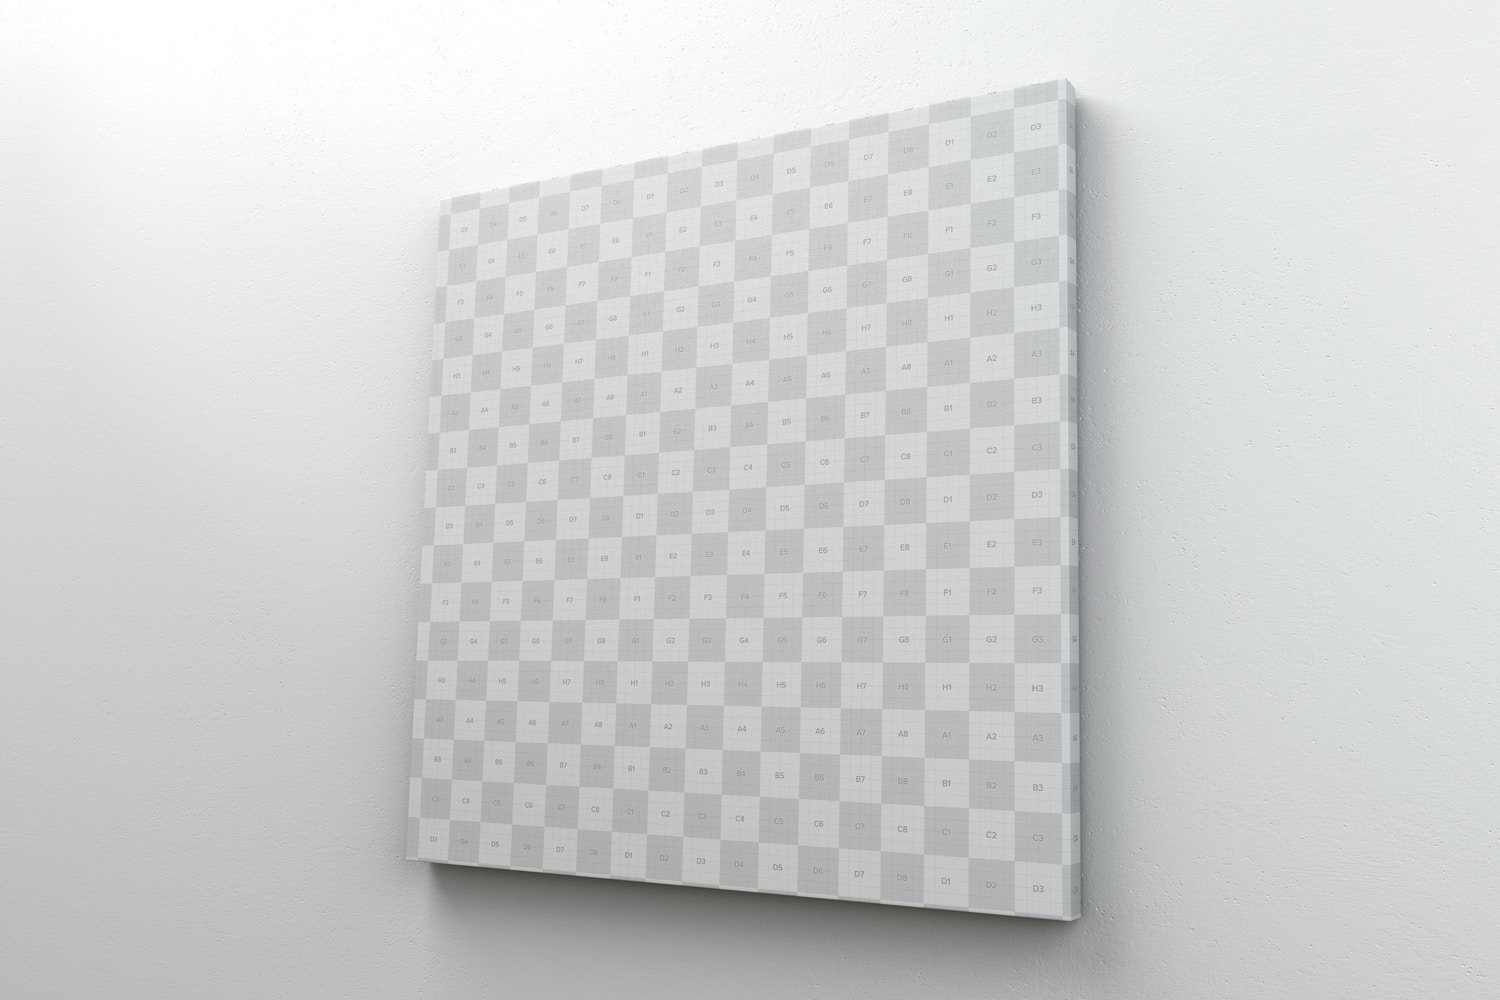 Square Canvas Mockup Hanging on Wall, Right View